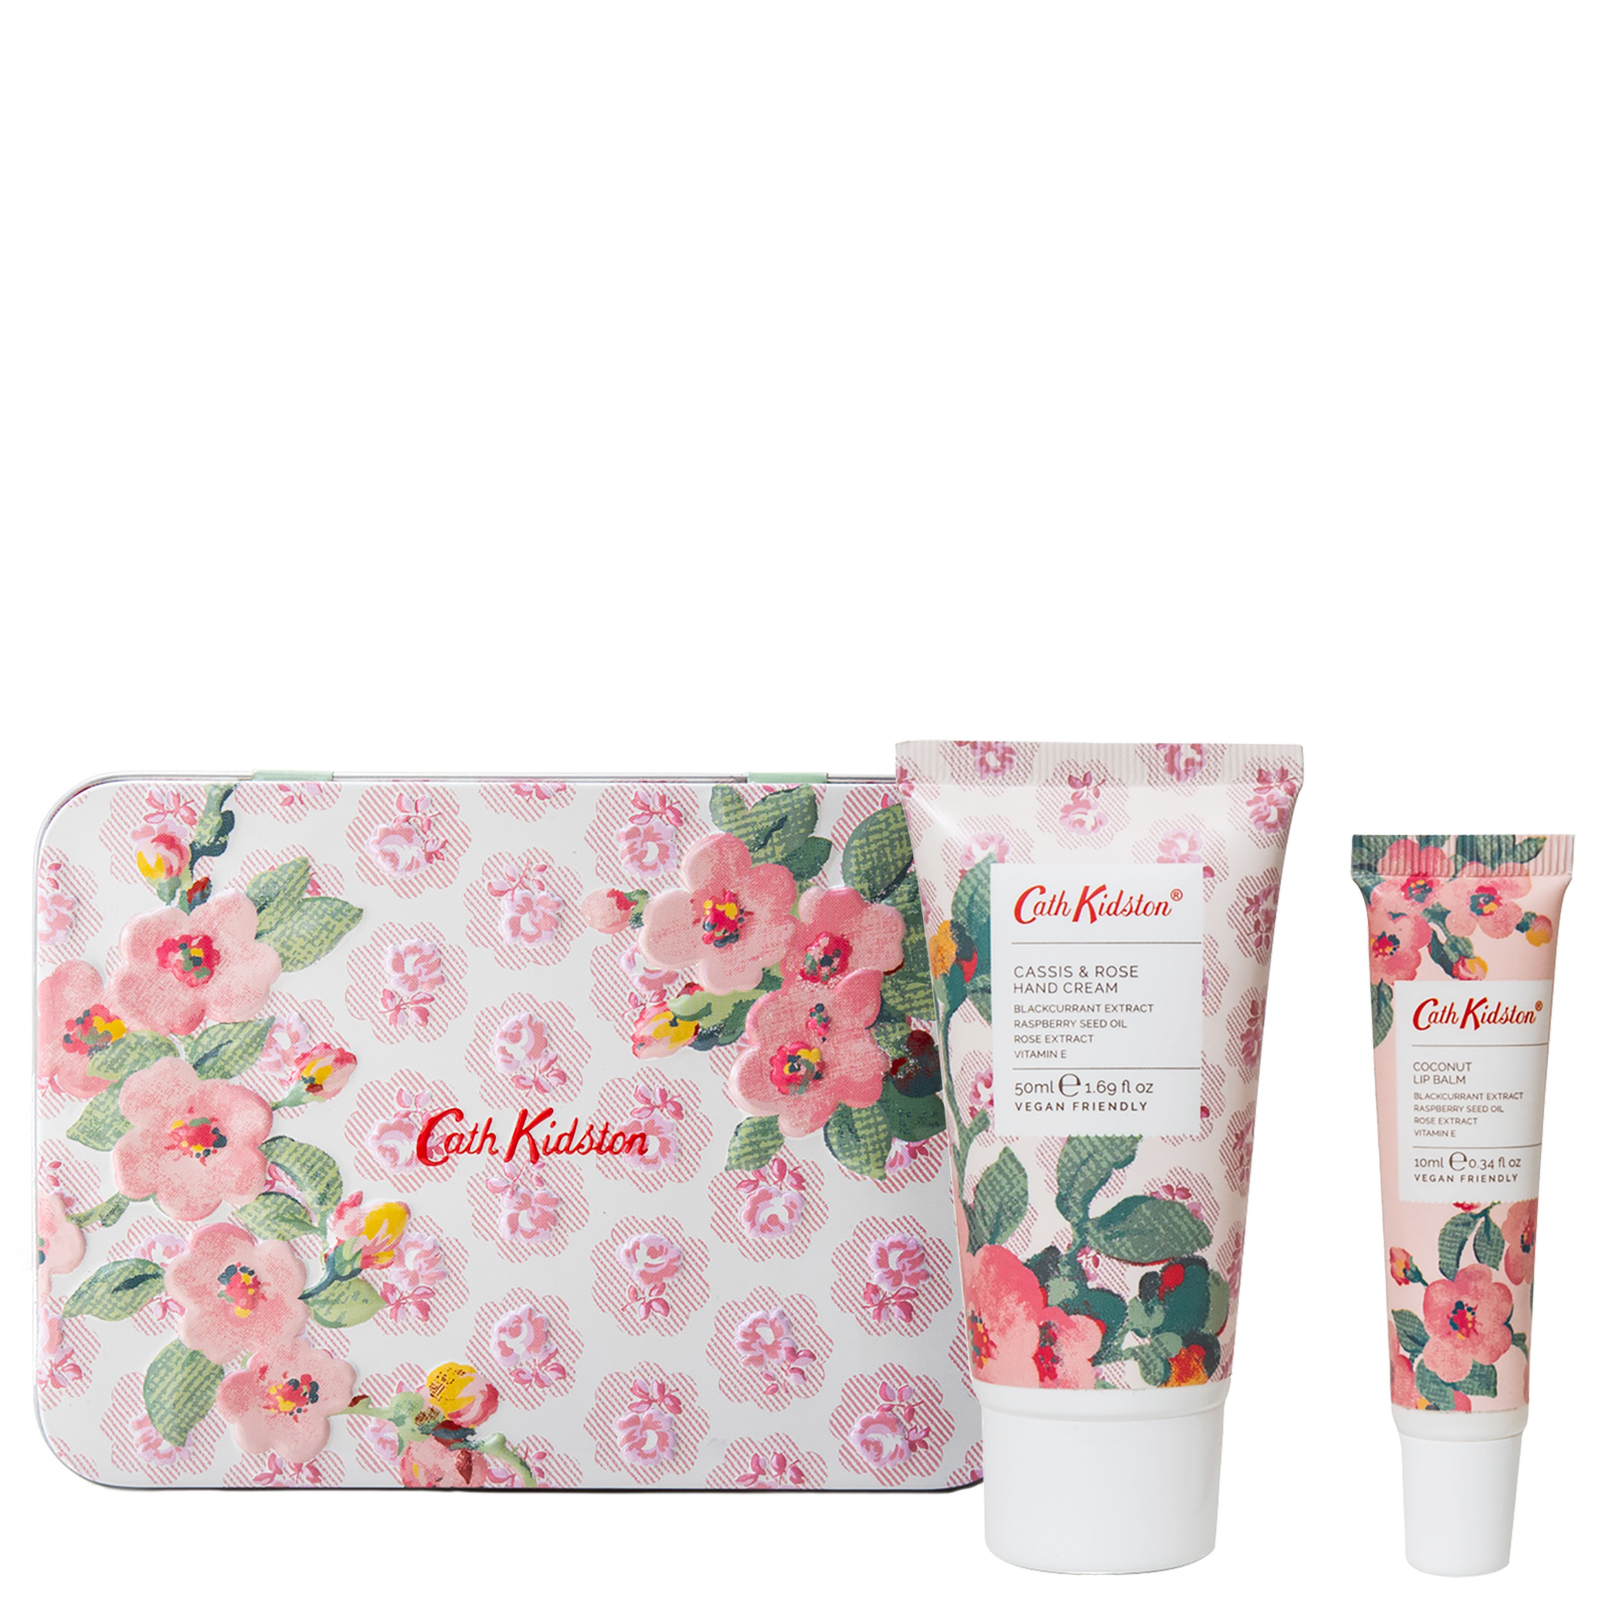 Cath Kidston Christmas 2020 Cassis & Rose Hand & Lip Tin